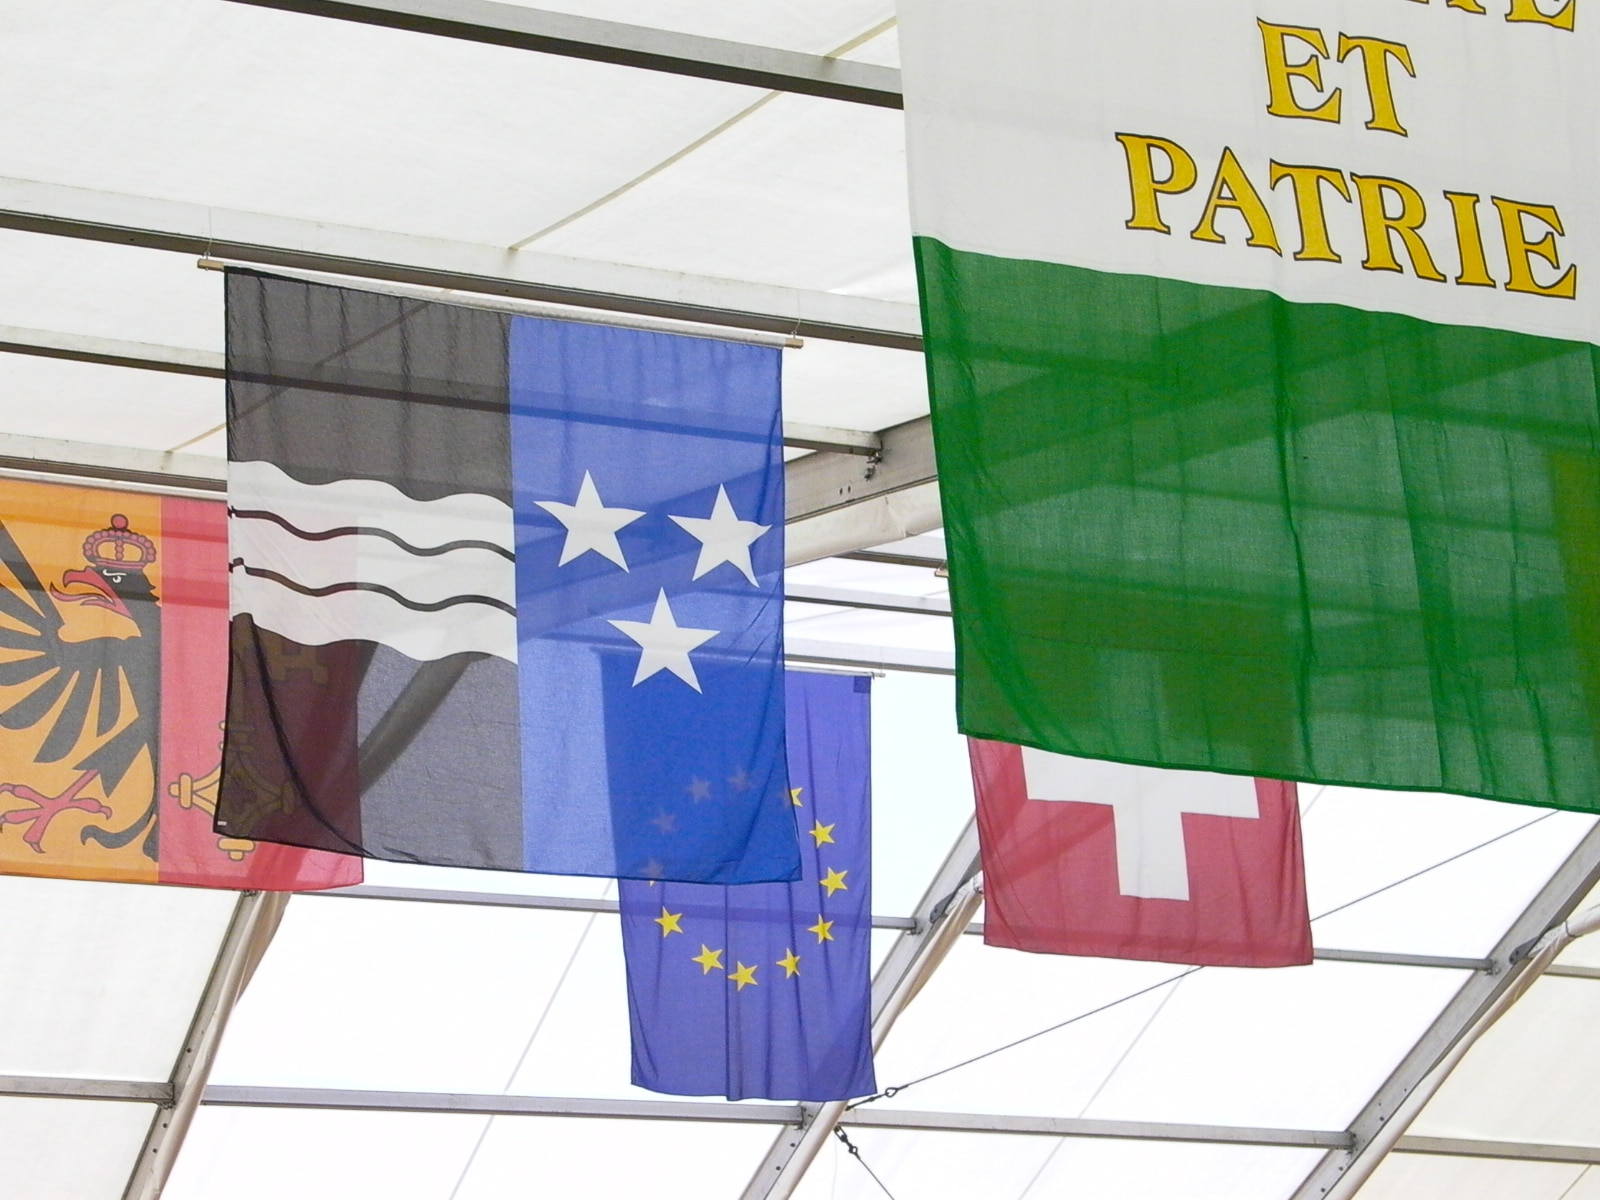 The EU flag can often be seen floating beside the Swiss national banner on many an occasion (swissinfo.ch)